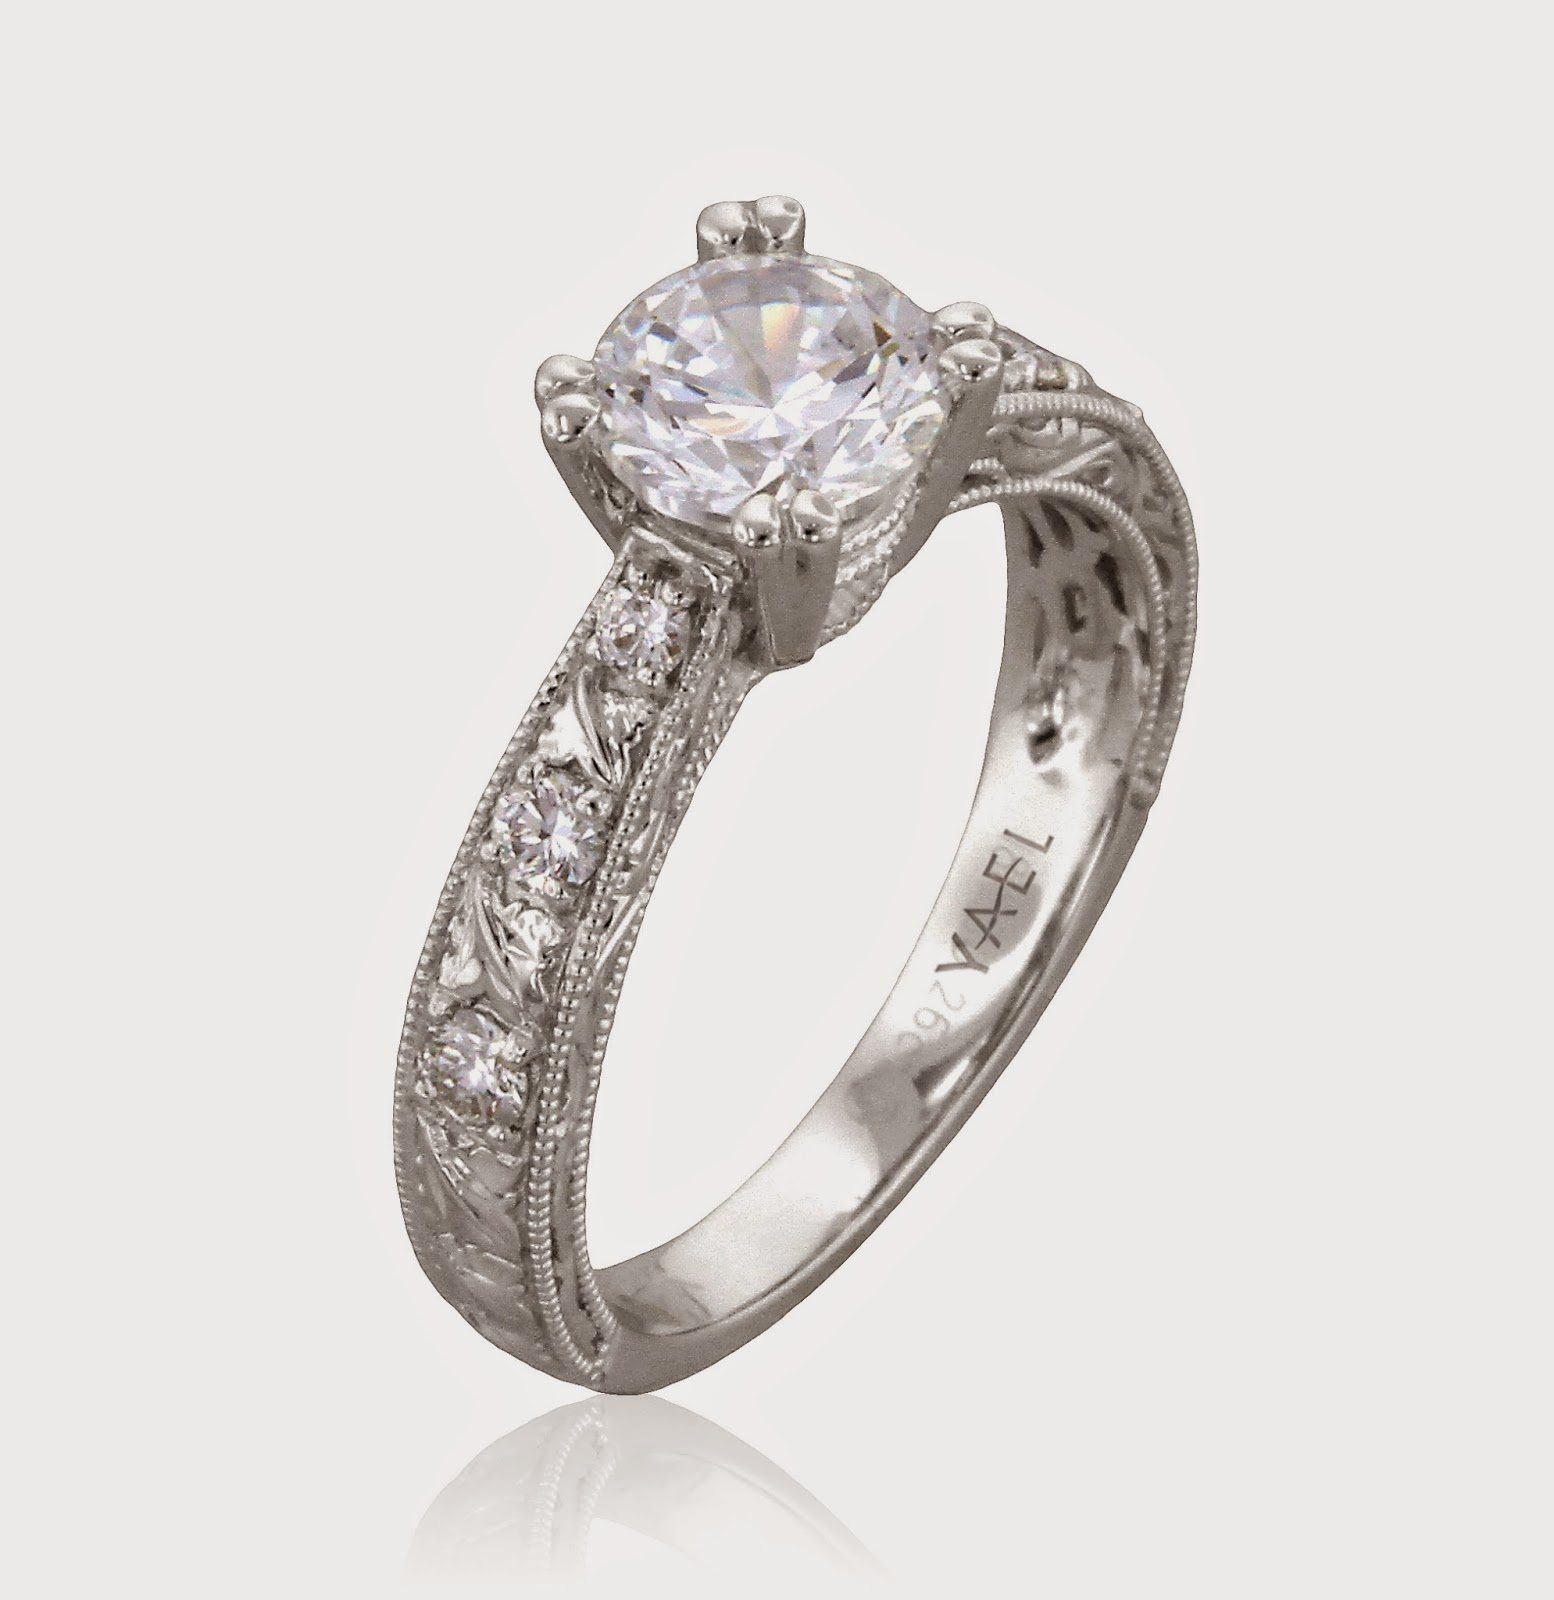 Wedding Rings San Francisco 34 Good About Yael DesignsFounded in